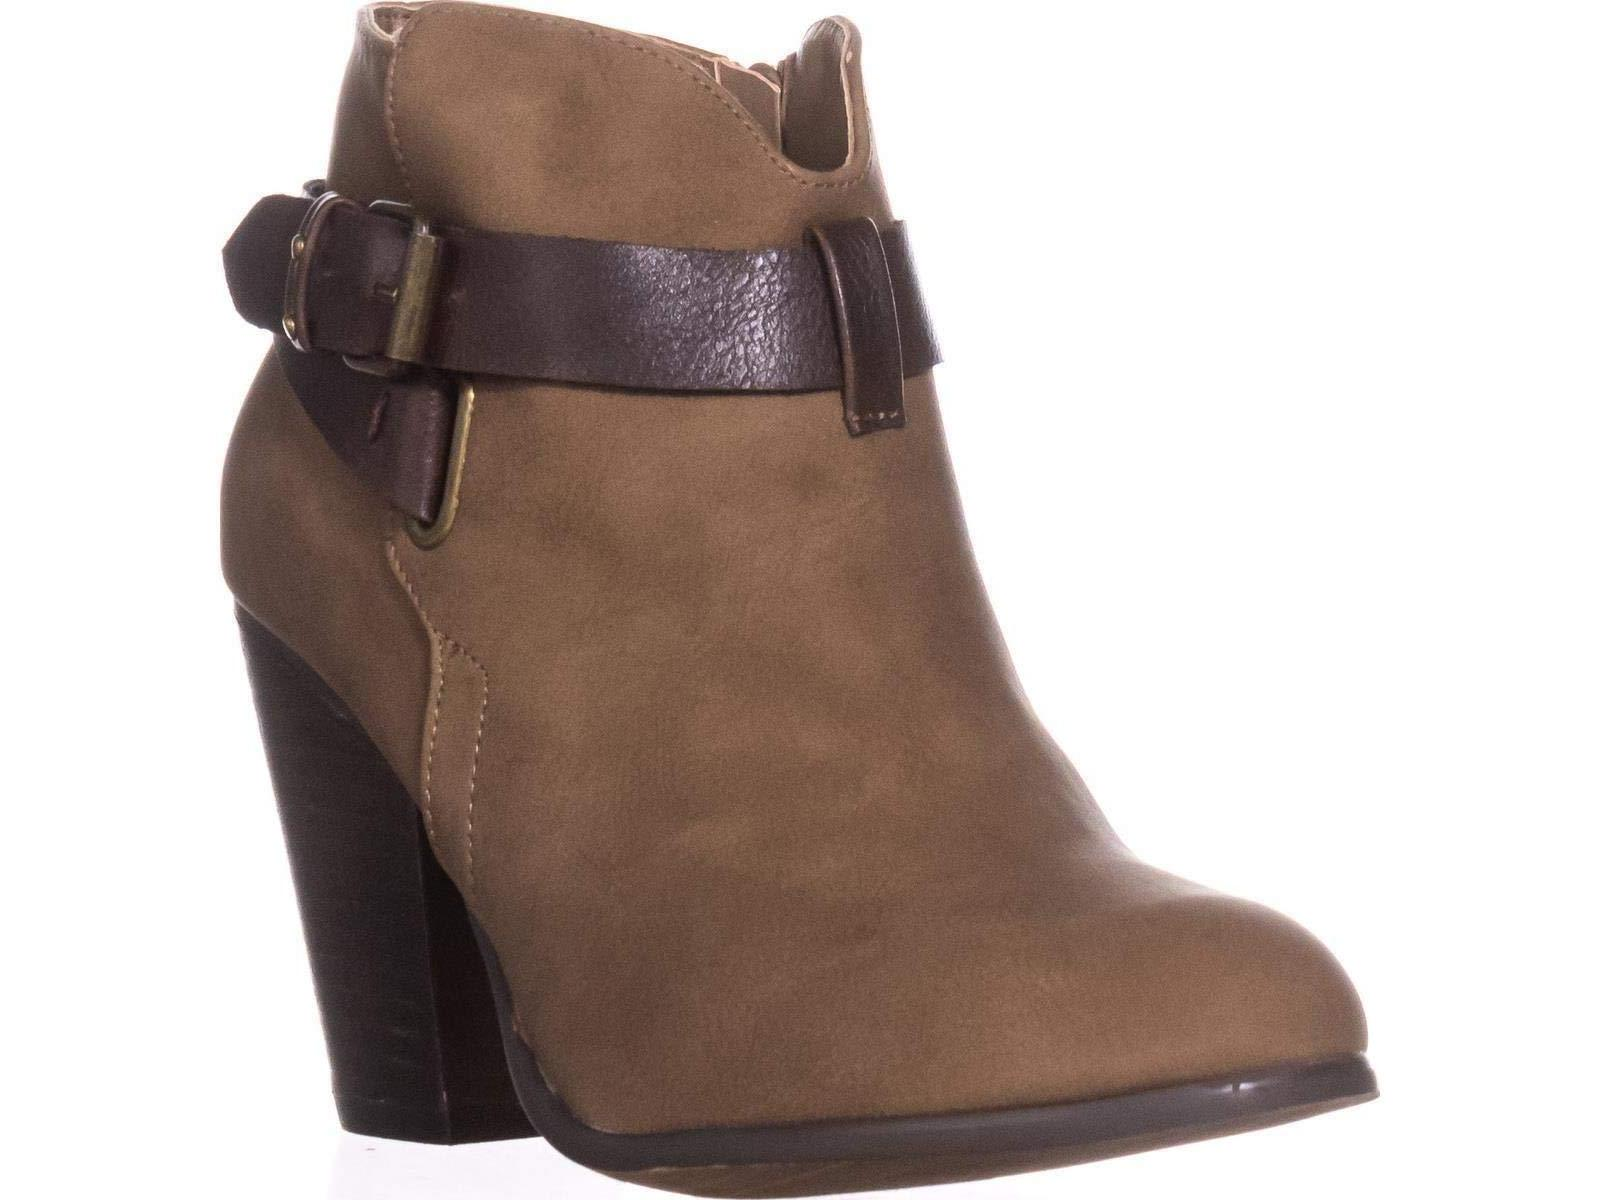 fd6f3578729 Xoxo womens katniss closed toe ankle fashion boots jpg 1600x1200 Xoxo shoes  for women